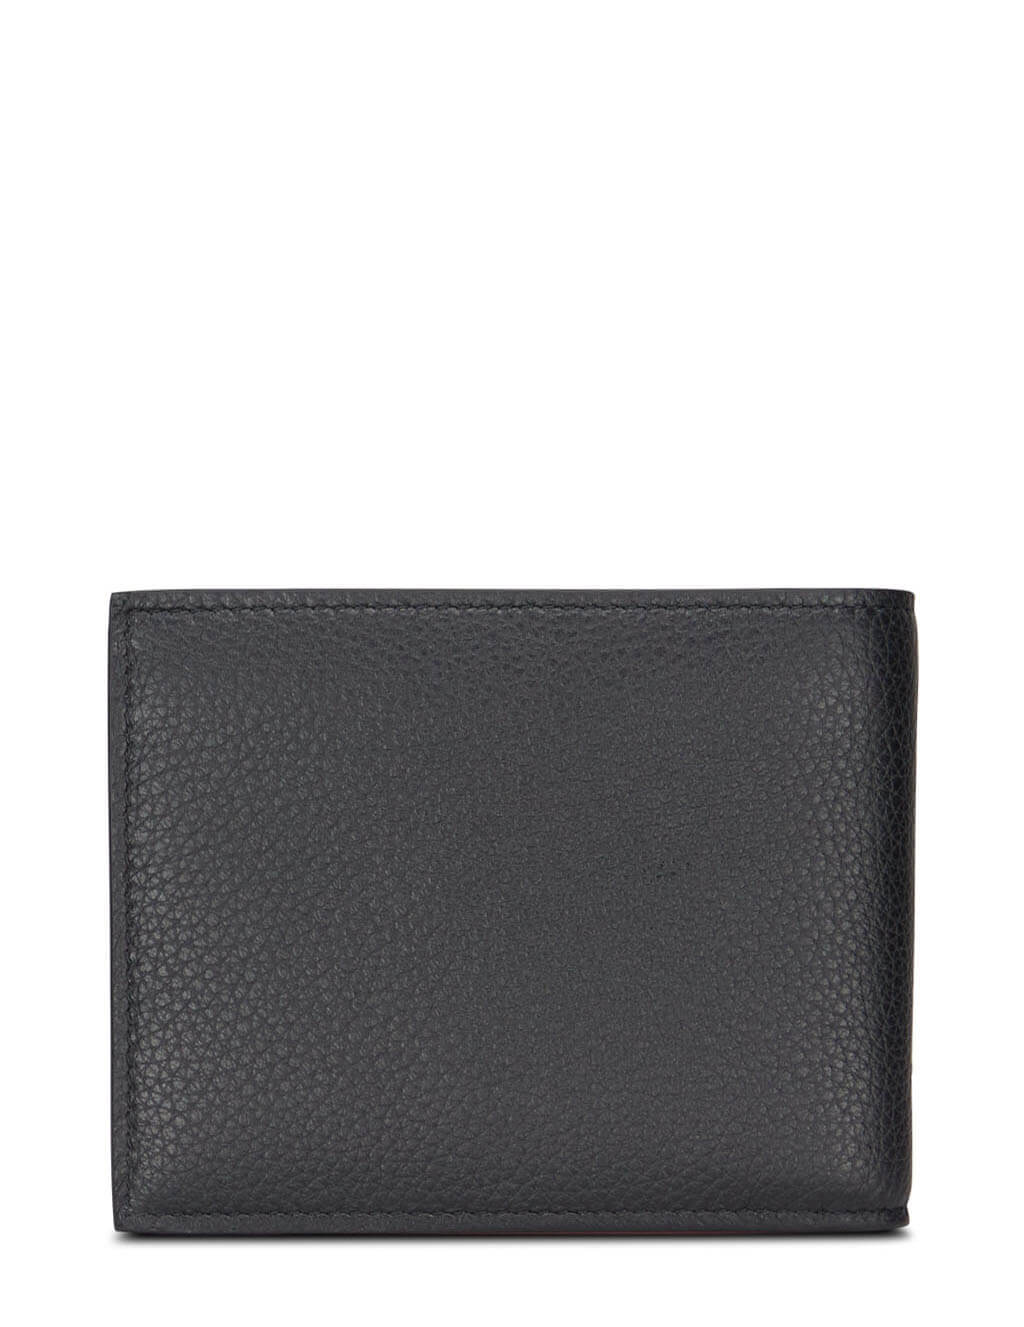 Christian Louboutin Black/Red Coolcard Wallet 3195052H734